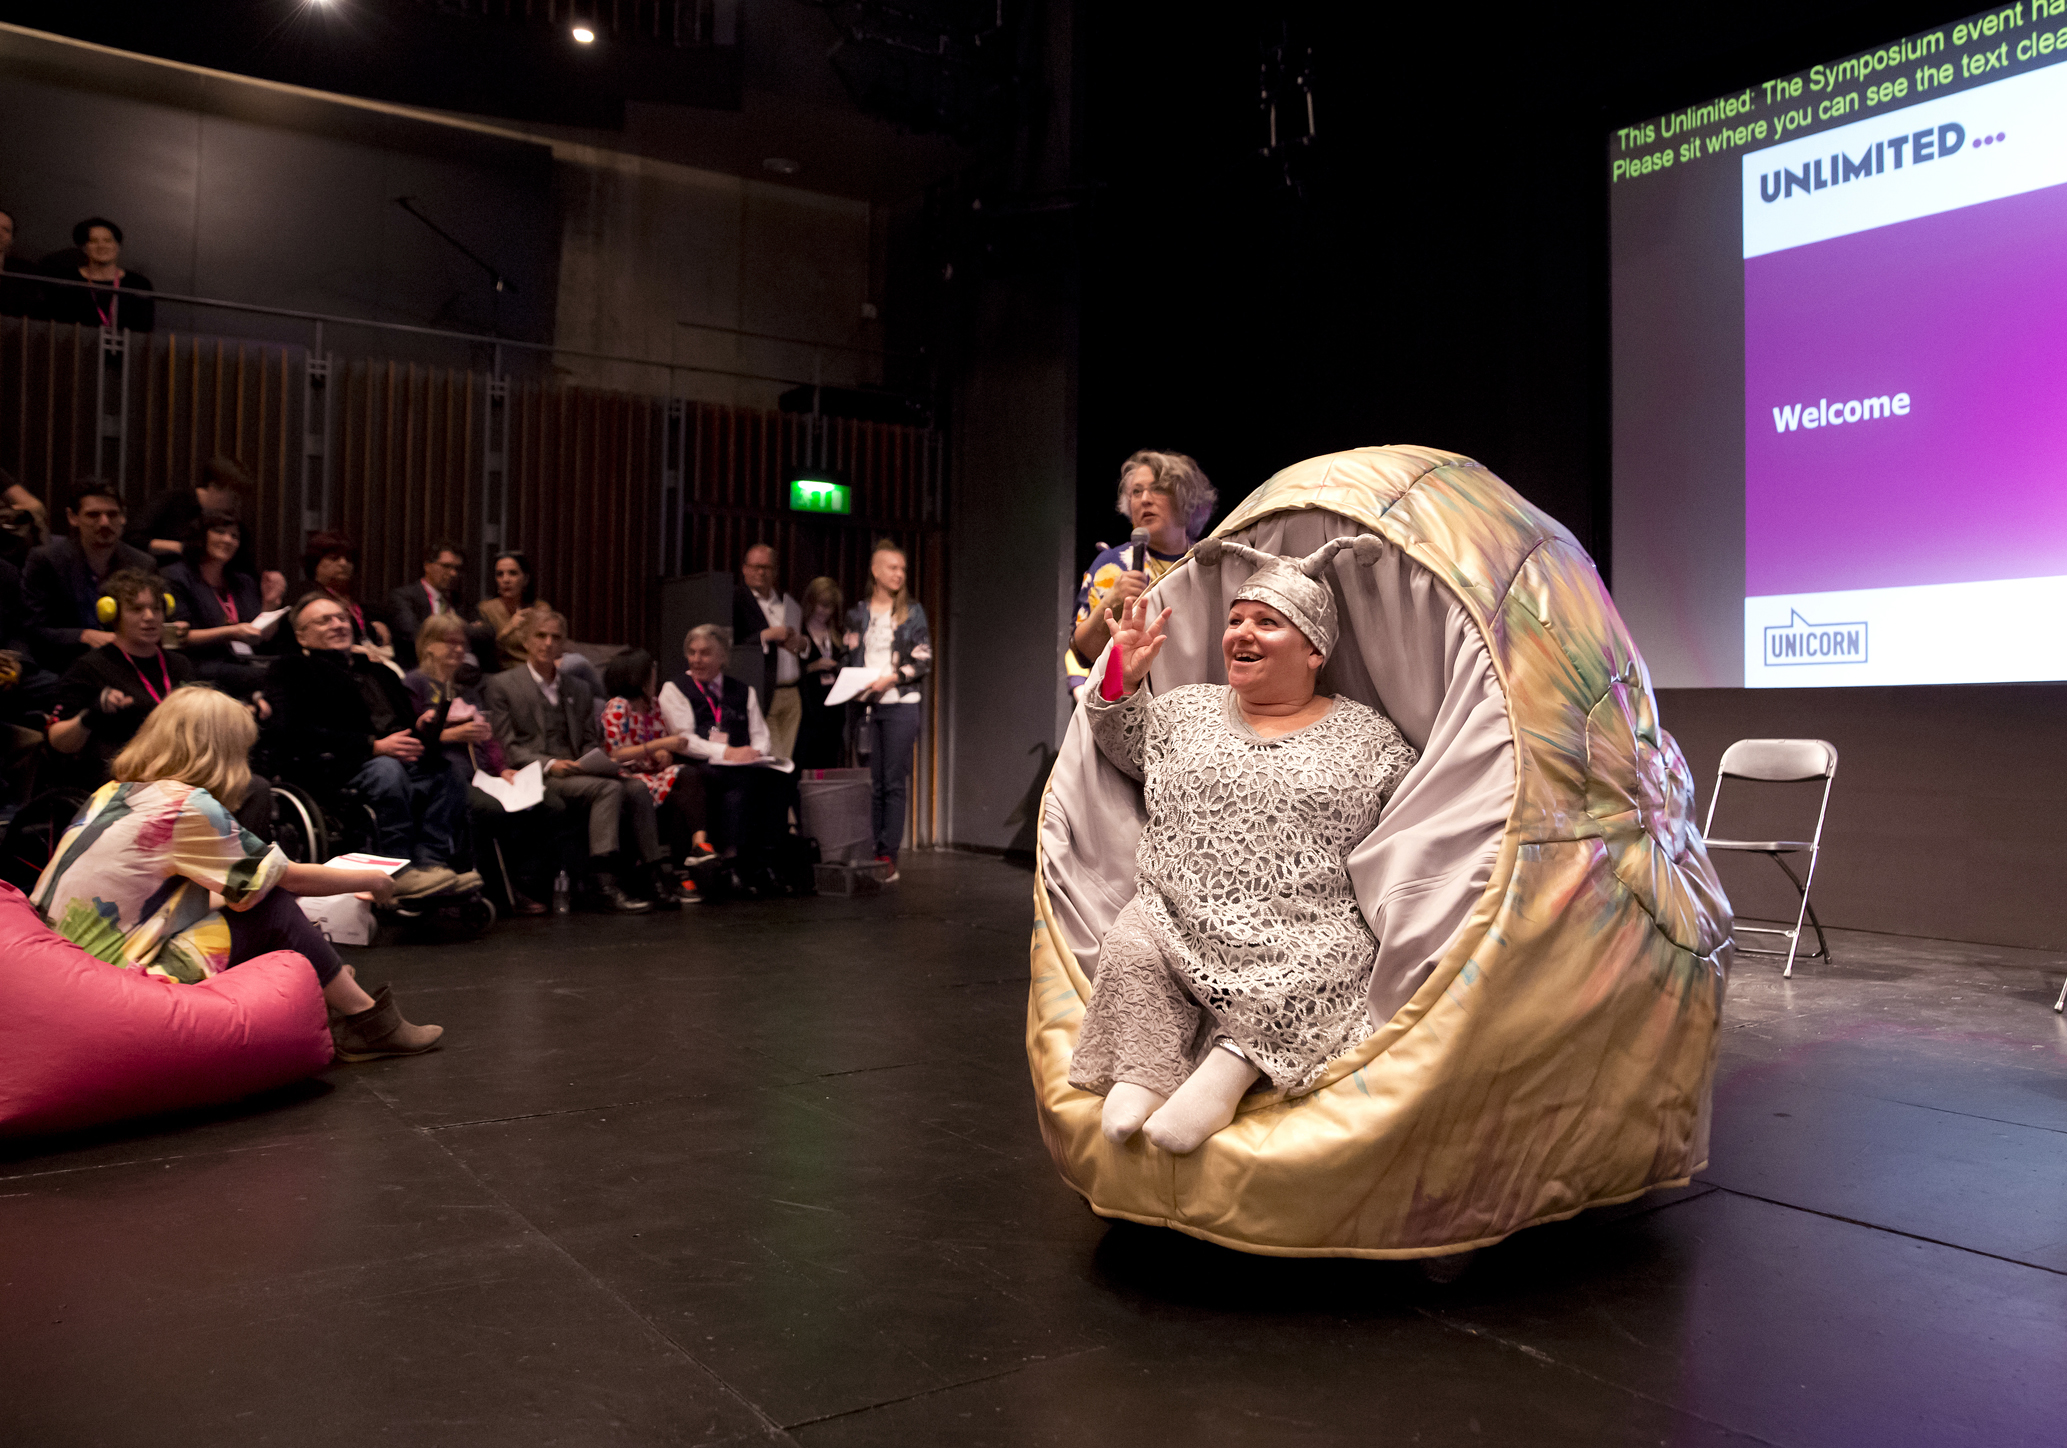 Caroline Bowditch is in a dark theatre space in costume as a golden snail. She is waving in the direction of an audience, whilst Jo Verrent stands behind her with a microphone. They are in front of an Unlimited PowerPoint presentation that says 'Welcome'.